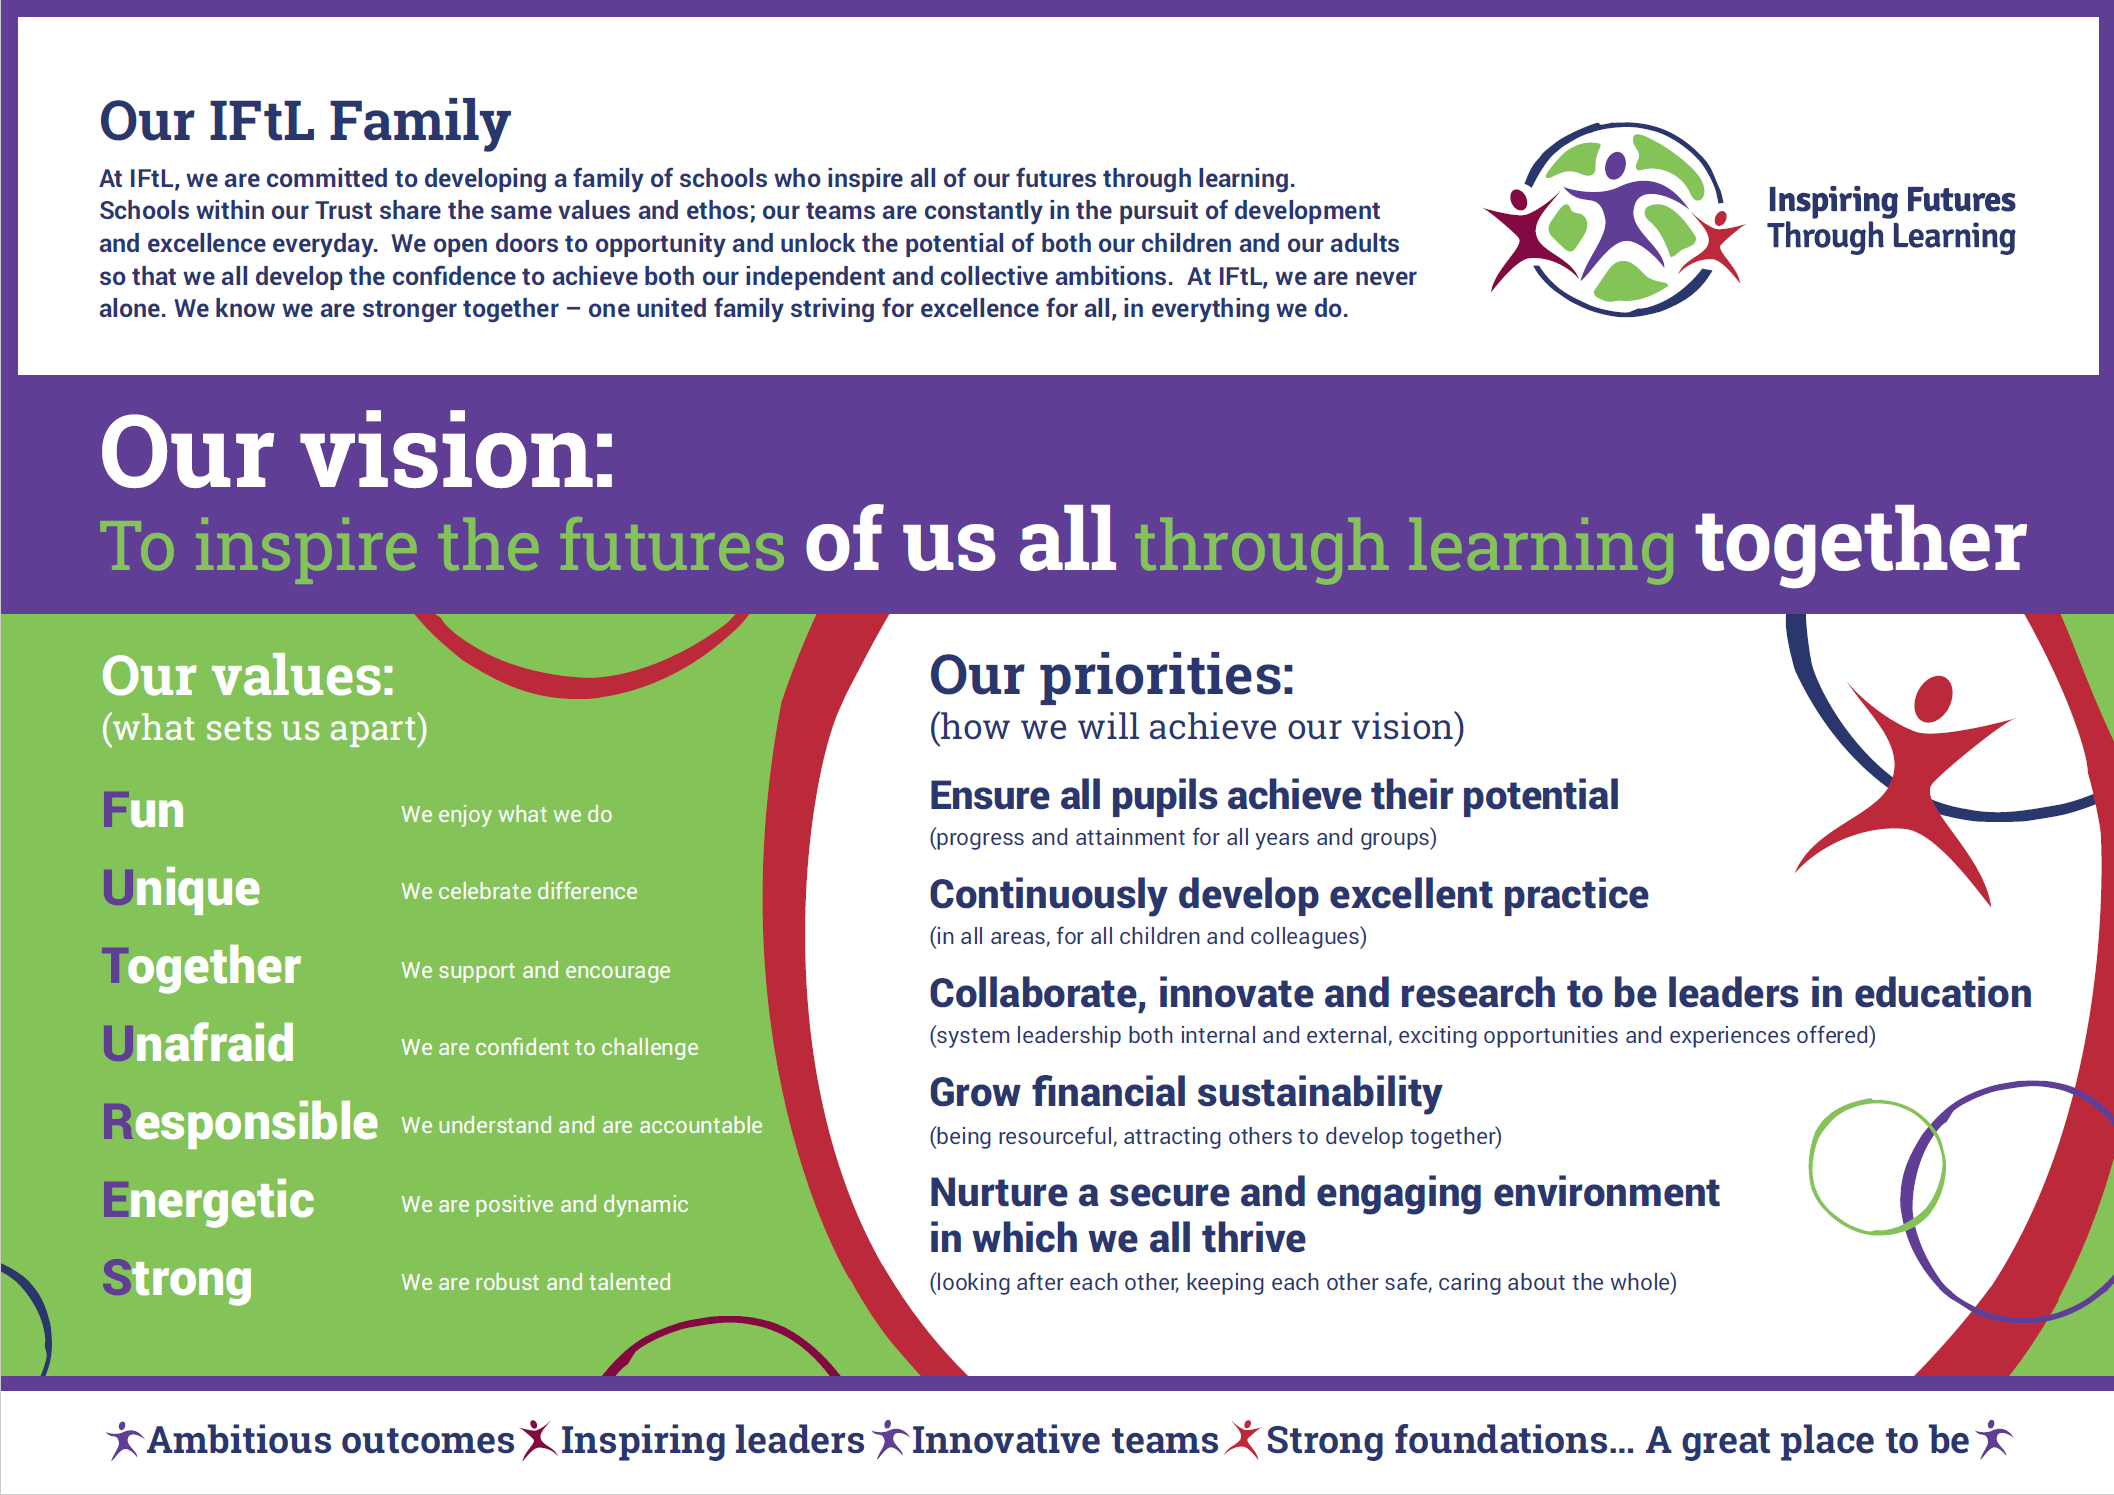 IFtL Vision and Values